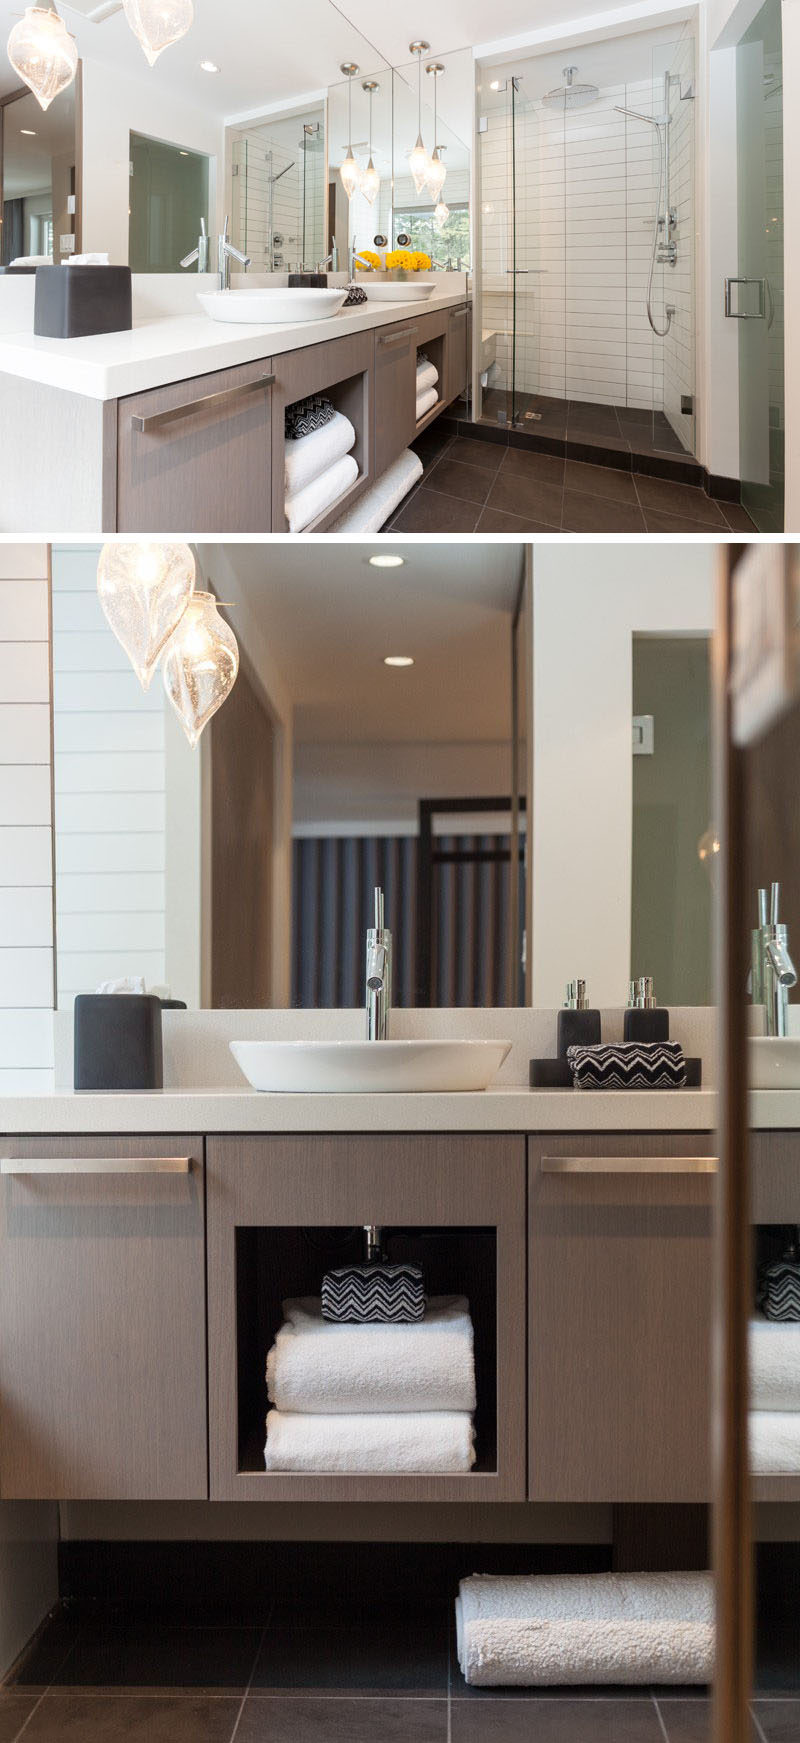 Nice  Examples of Bathroom Vanities That Have Open Shelving Under each of the sinks